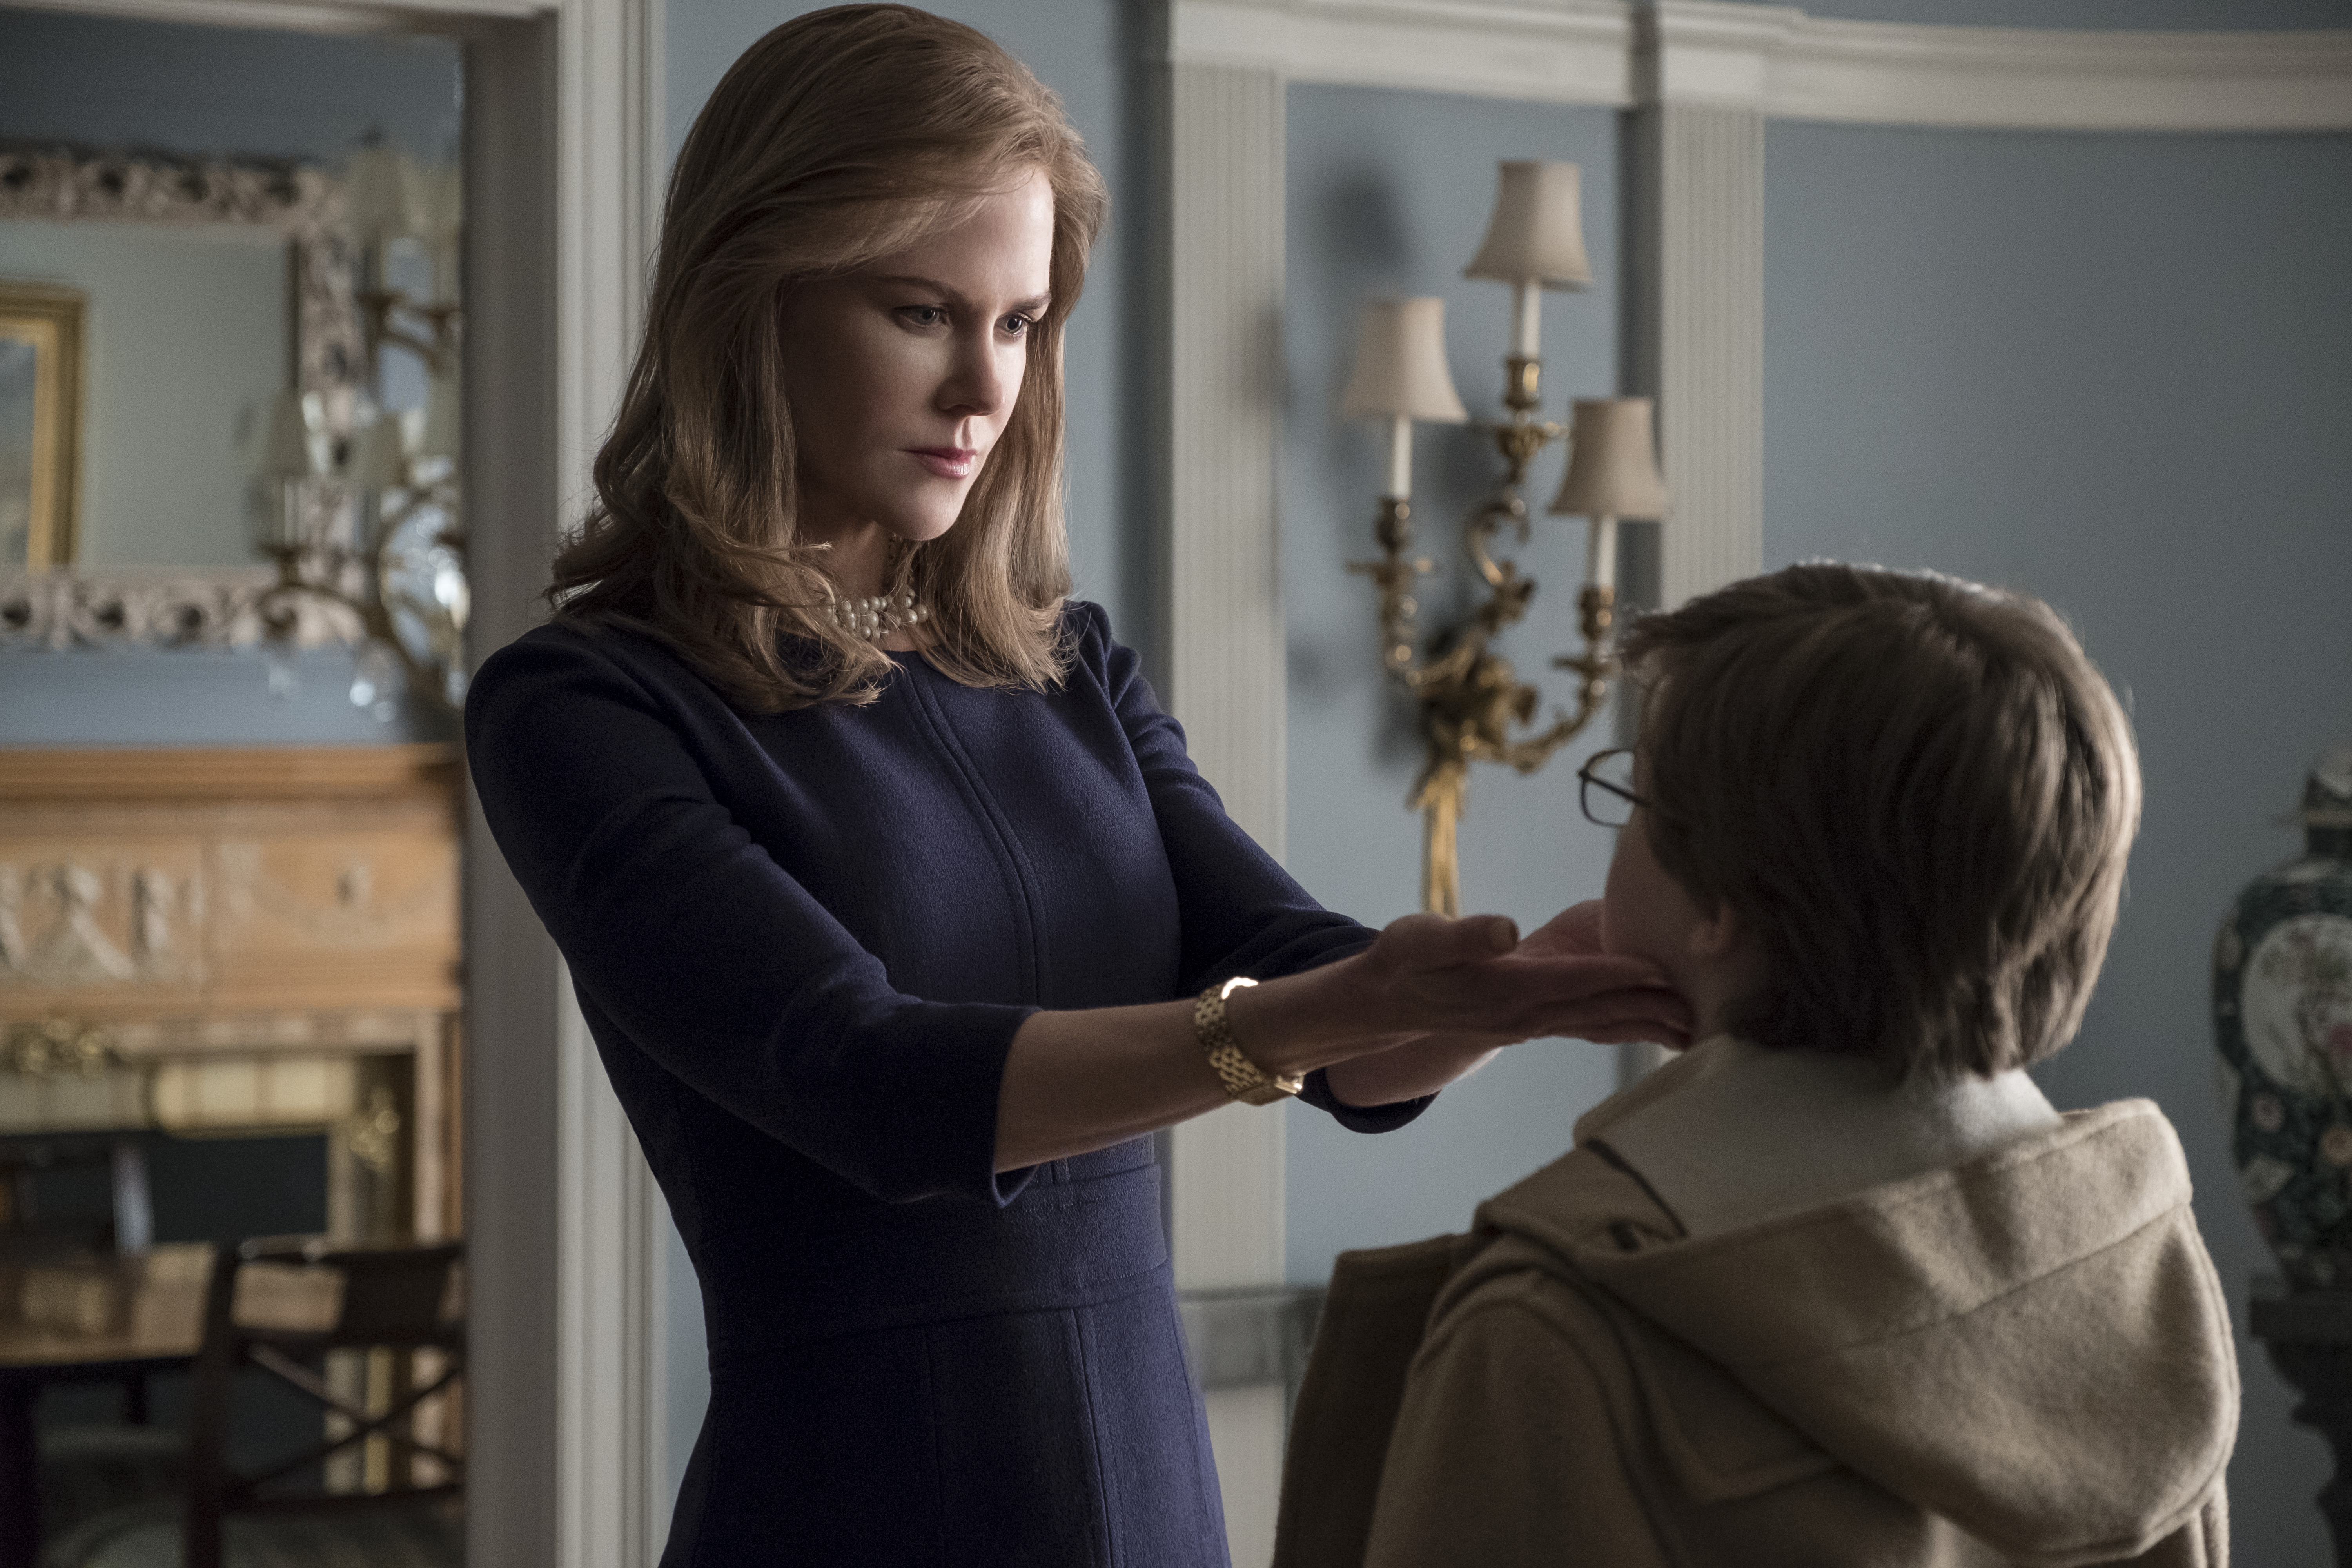 Nicole Kidman and Oakes Fegley in The Goldfinch.